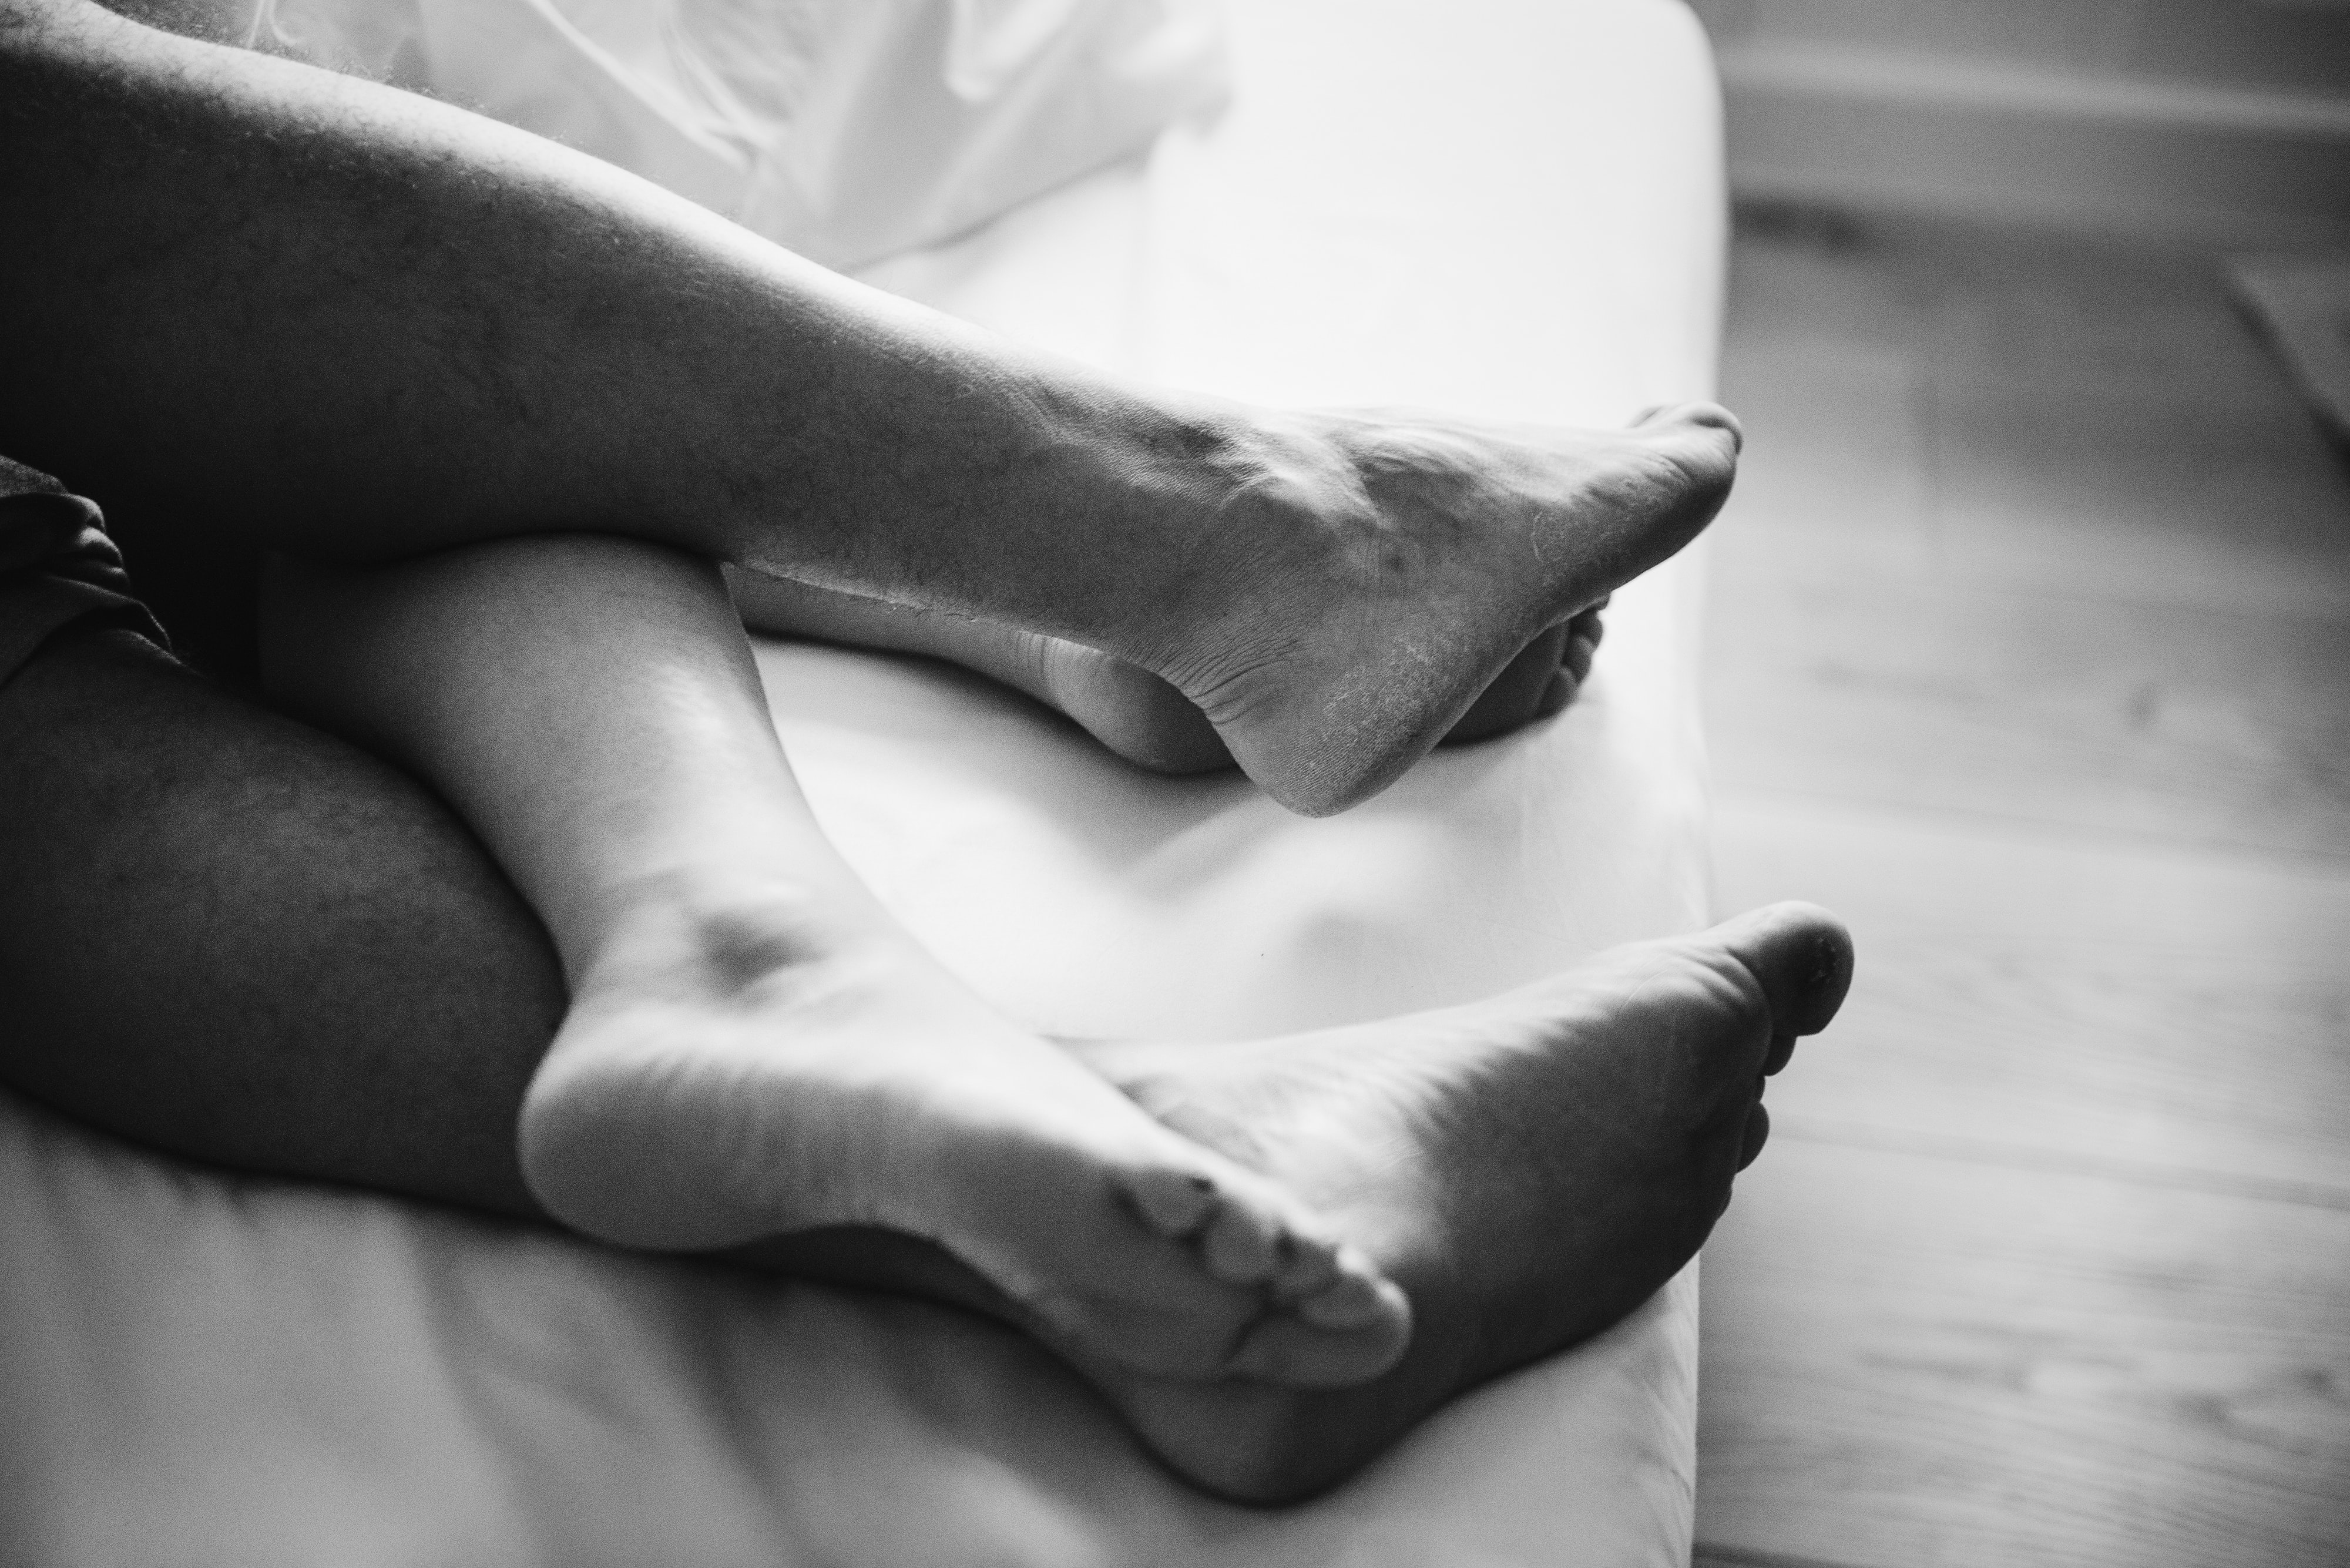 grayscale photography of person's feet on bed